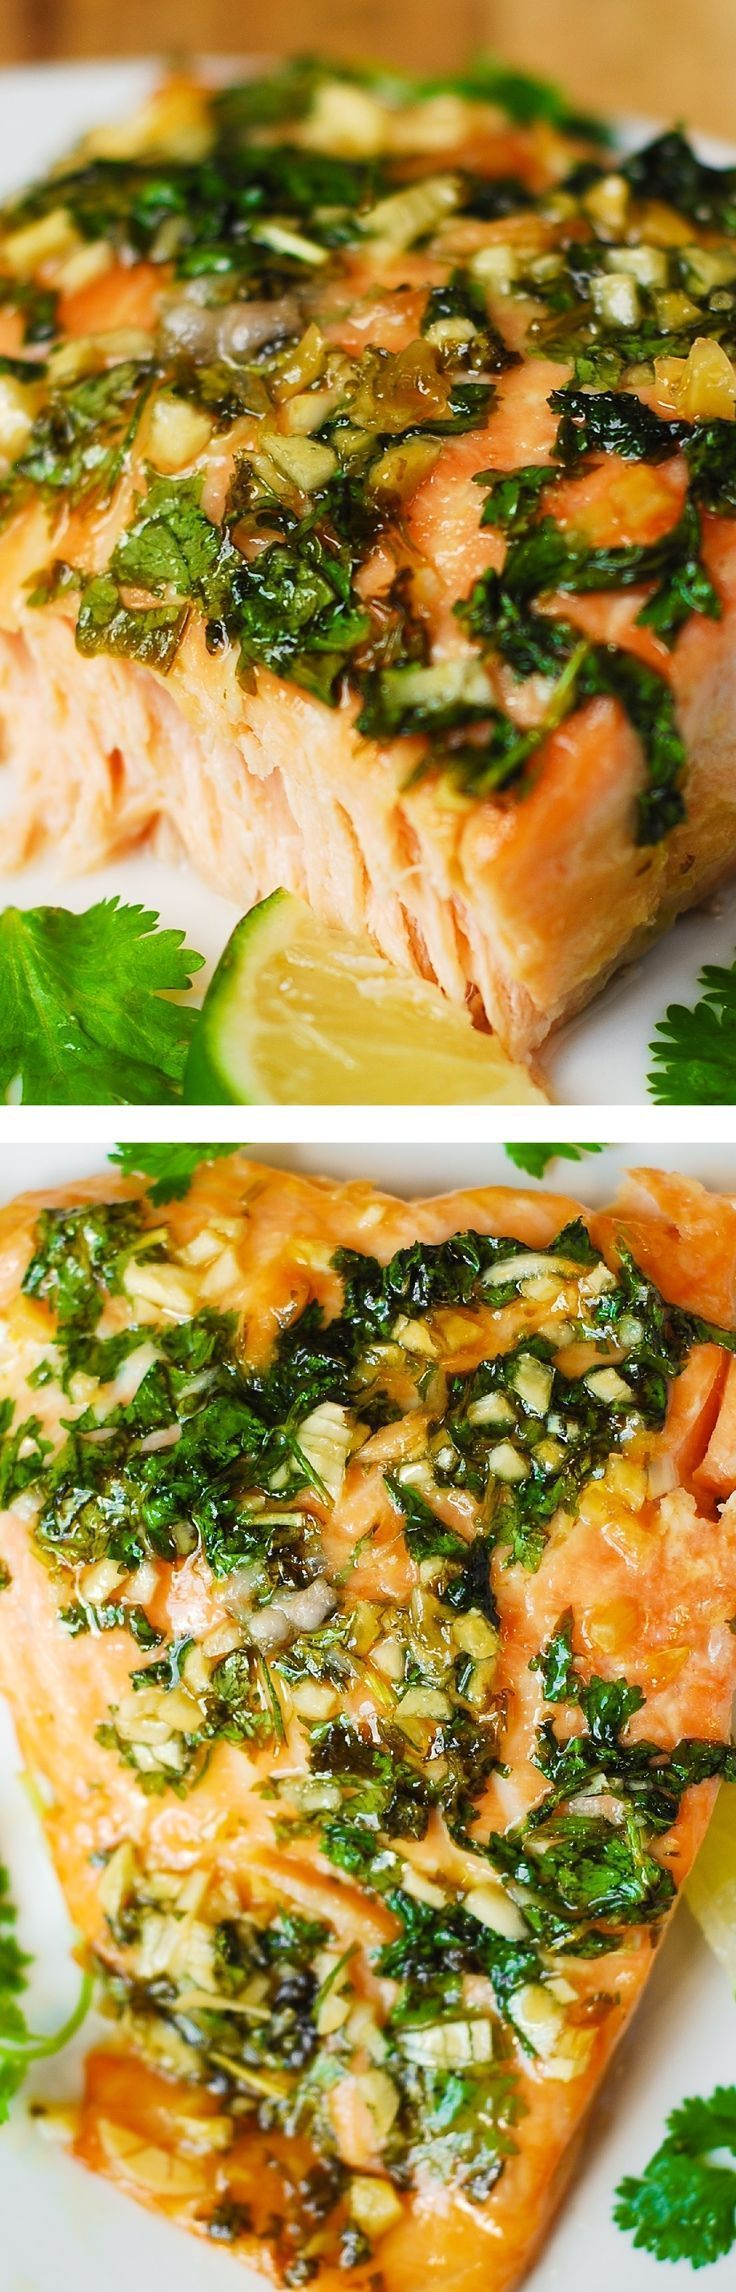 Cilantro Lime Honey Garlic Salmon Baked In Foil